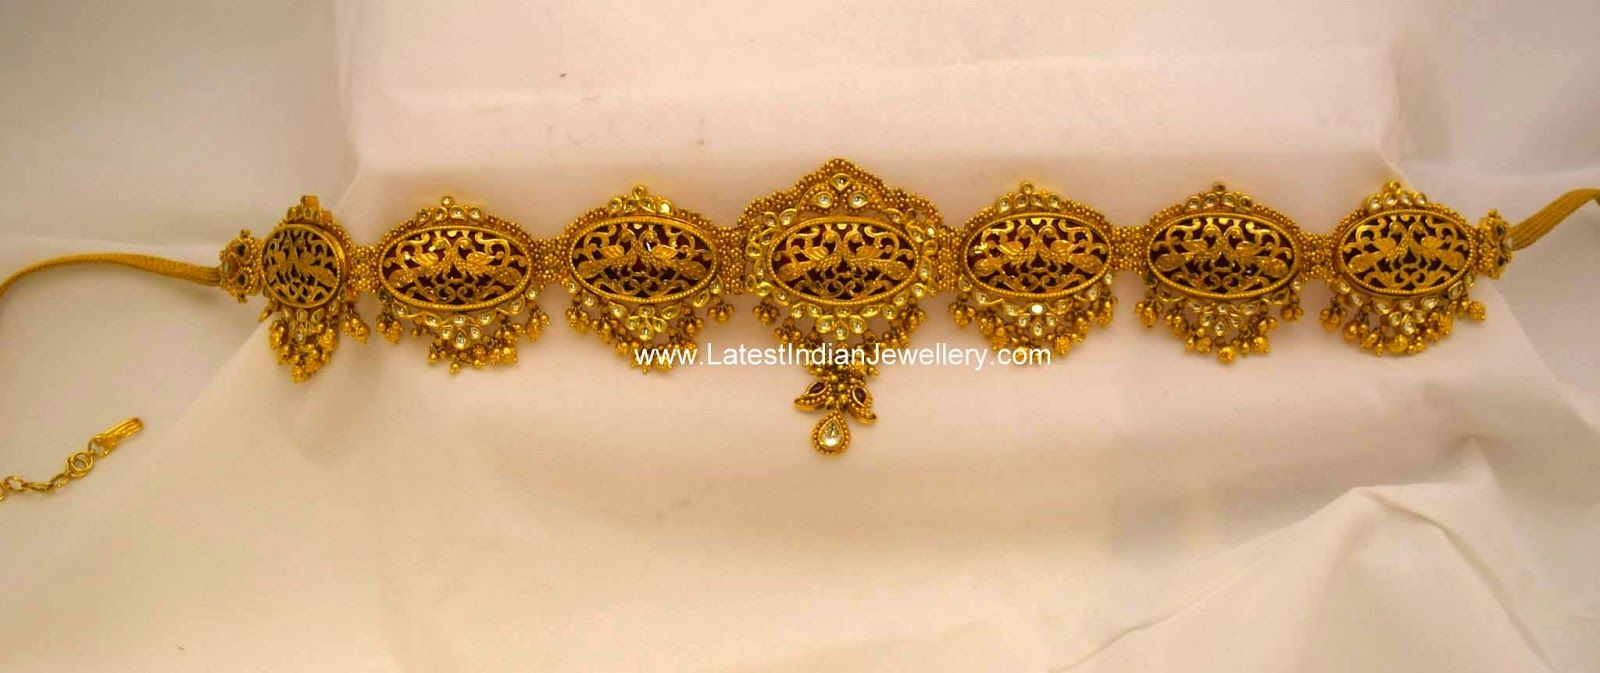 Gold vaddanam oddiyanam kammarpatta waisbelt designs south indian - Antique Gold Kundan Vaddanam